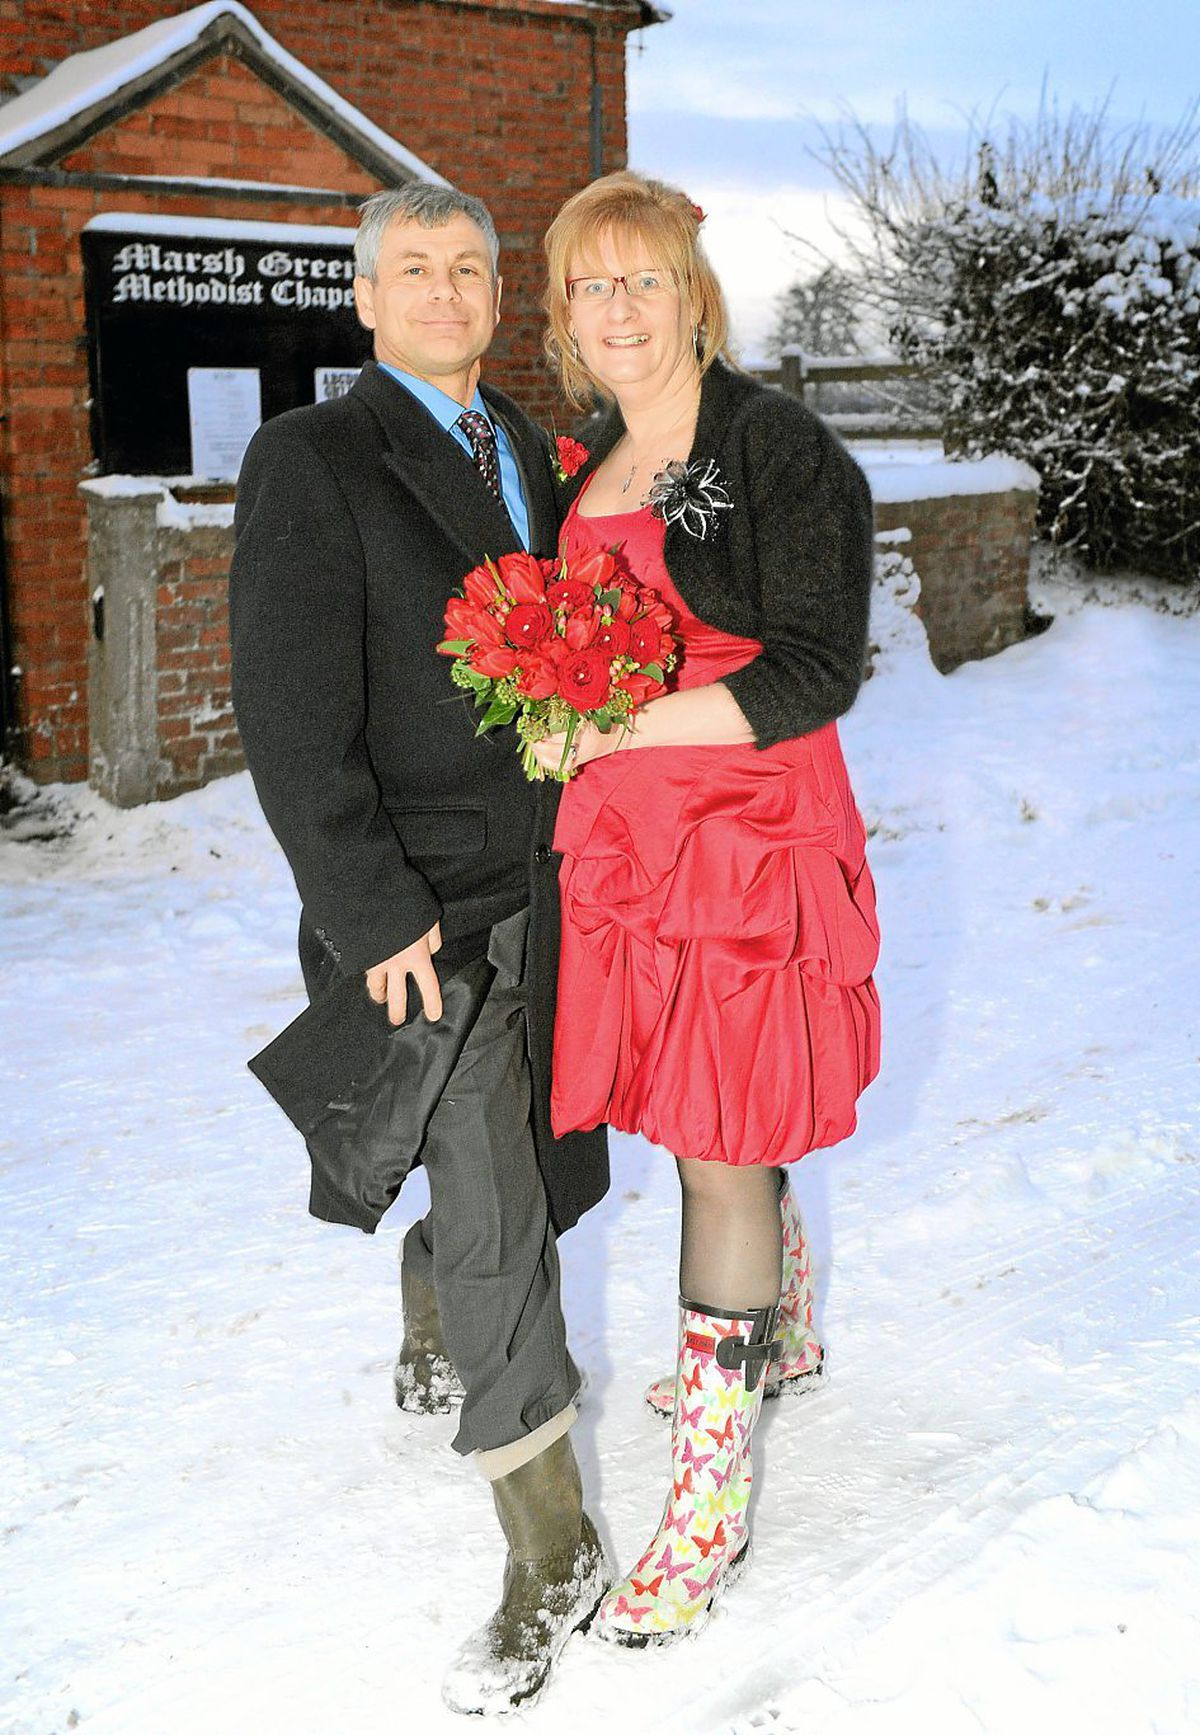 Stuart and Helen Williams got married at the chapel in their wellies after battling through snowfall in December 2010